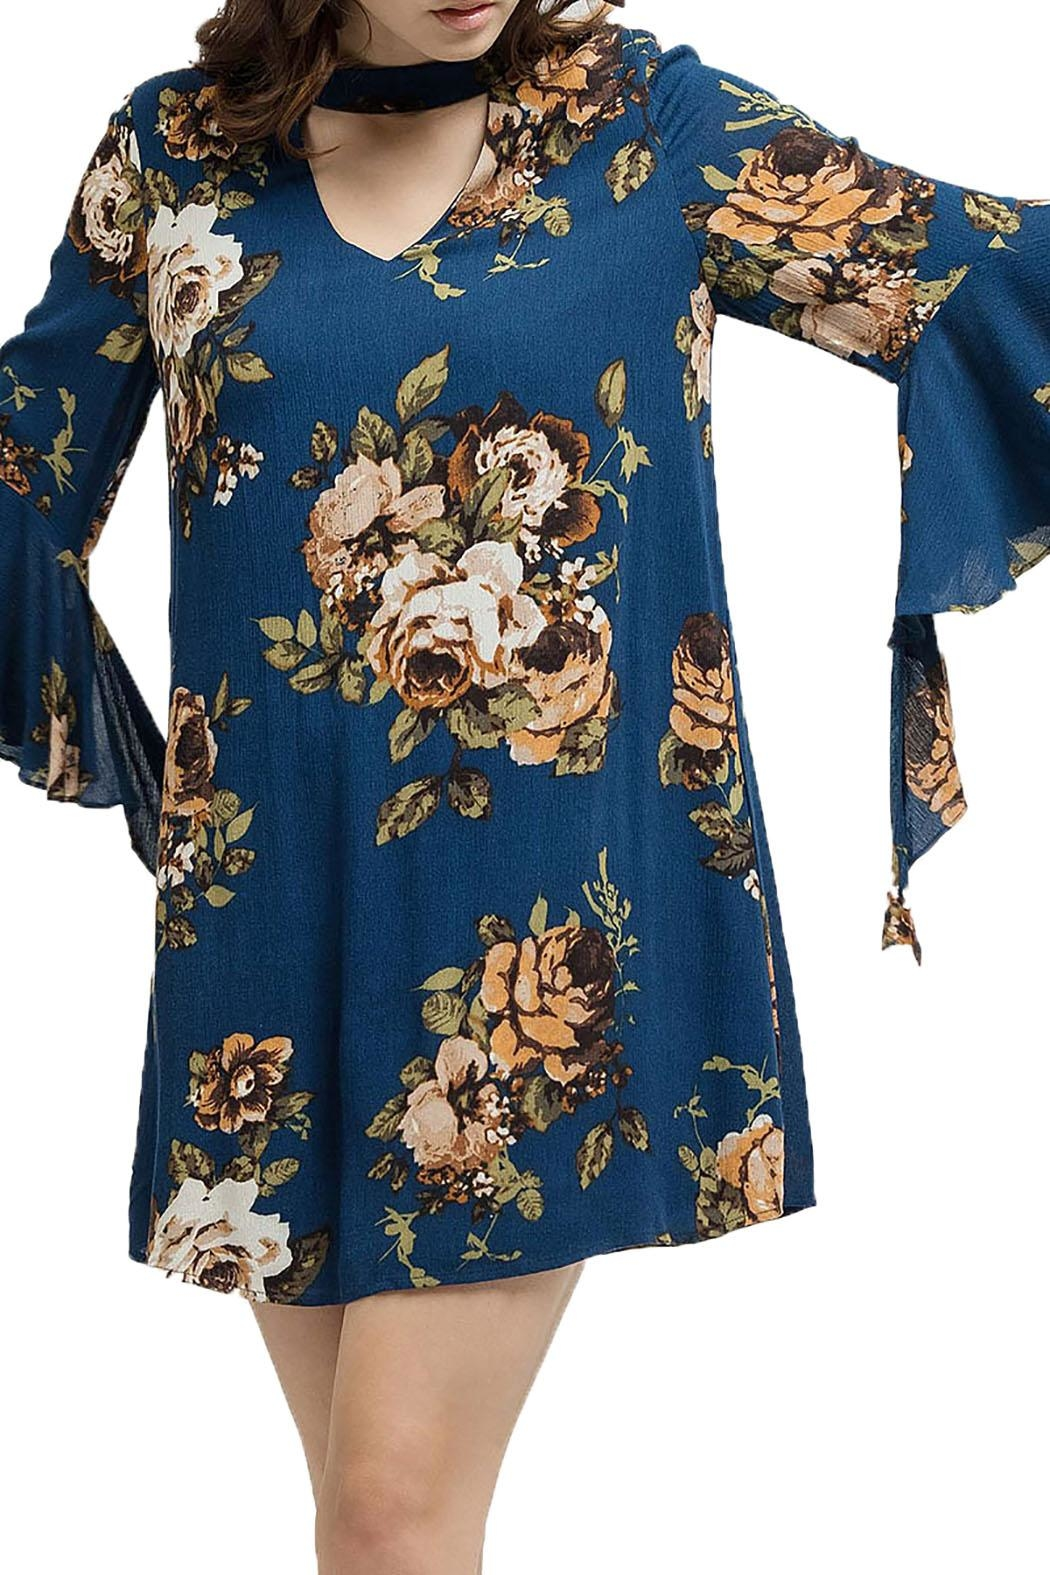 Blu Pepper Woven Floral Dress - Back Cropped Image